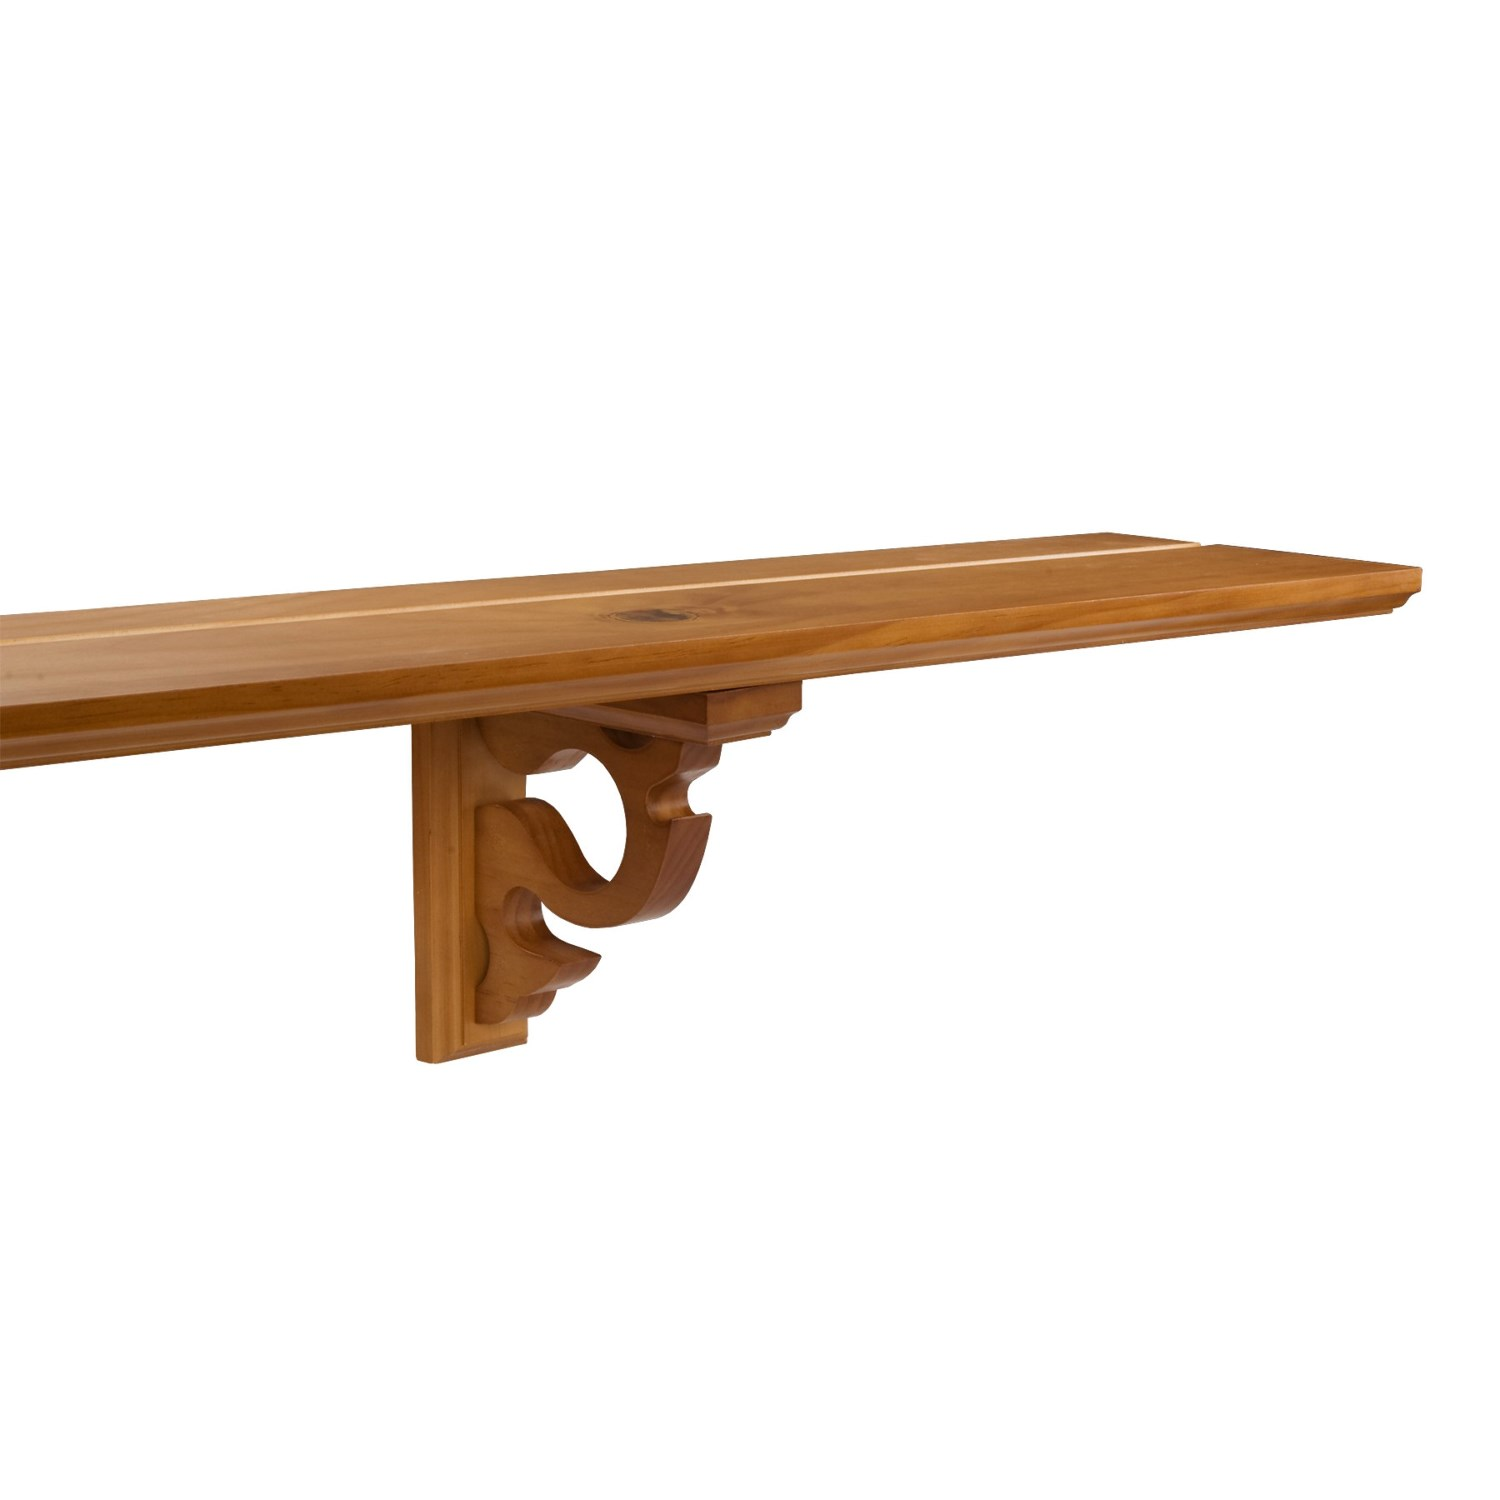 woodworking plans shelf brackets | Discover Woodworking ...